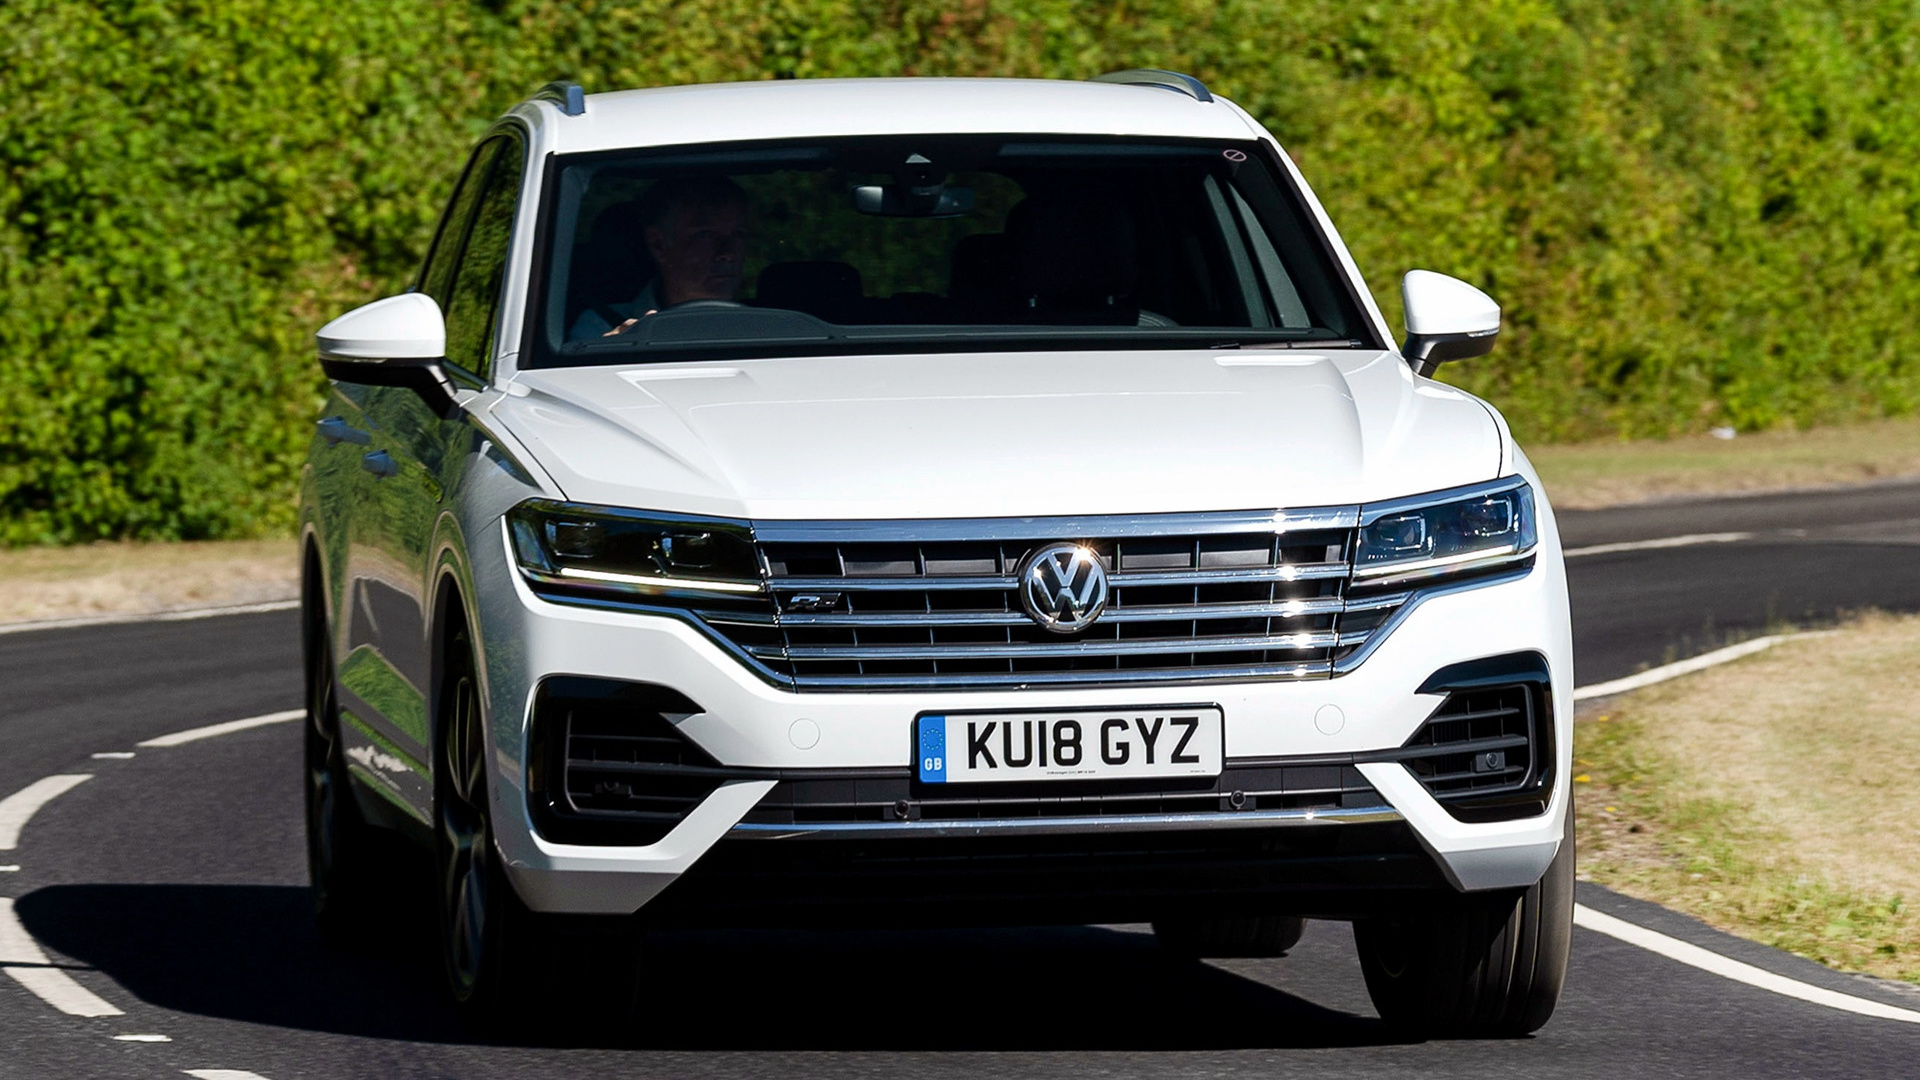 2018 Volkswagen Touareg R Line UK   Wallpapers and HD Images 1920x1080